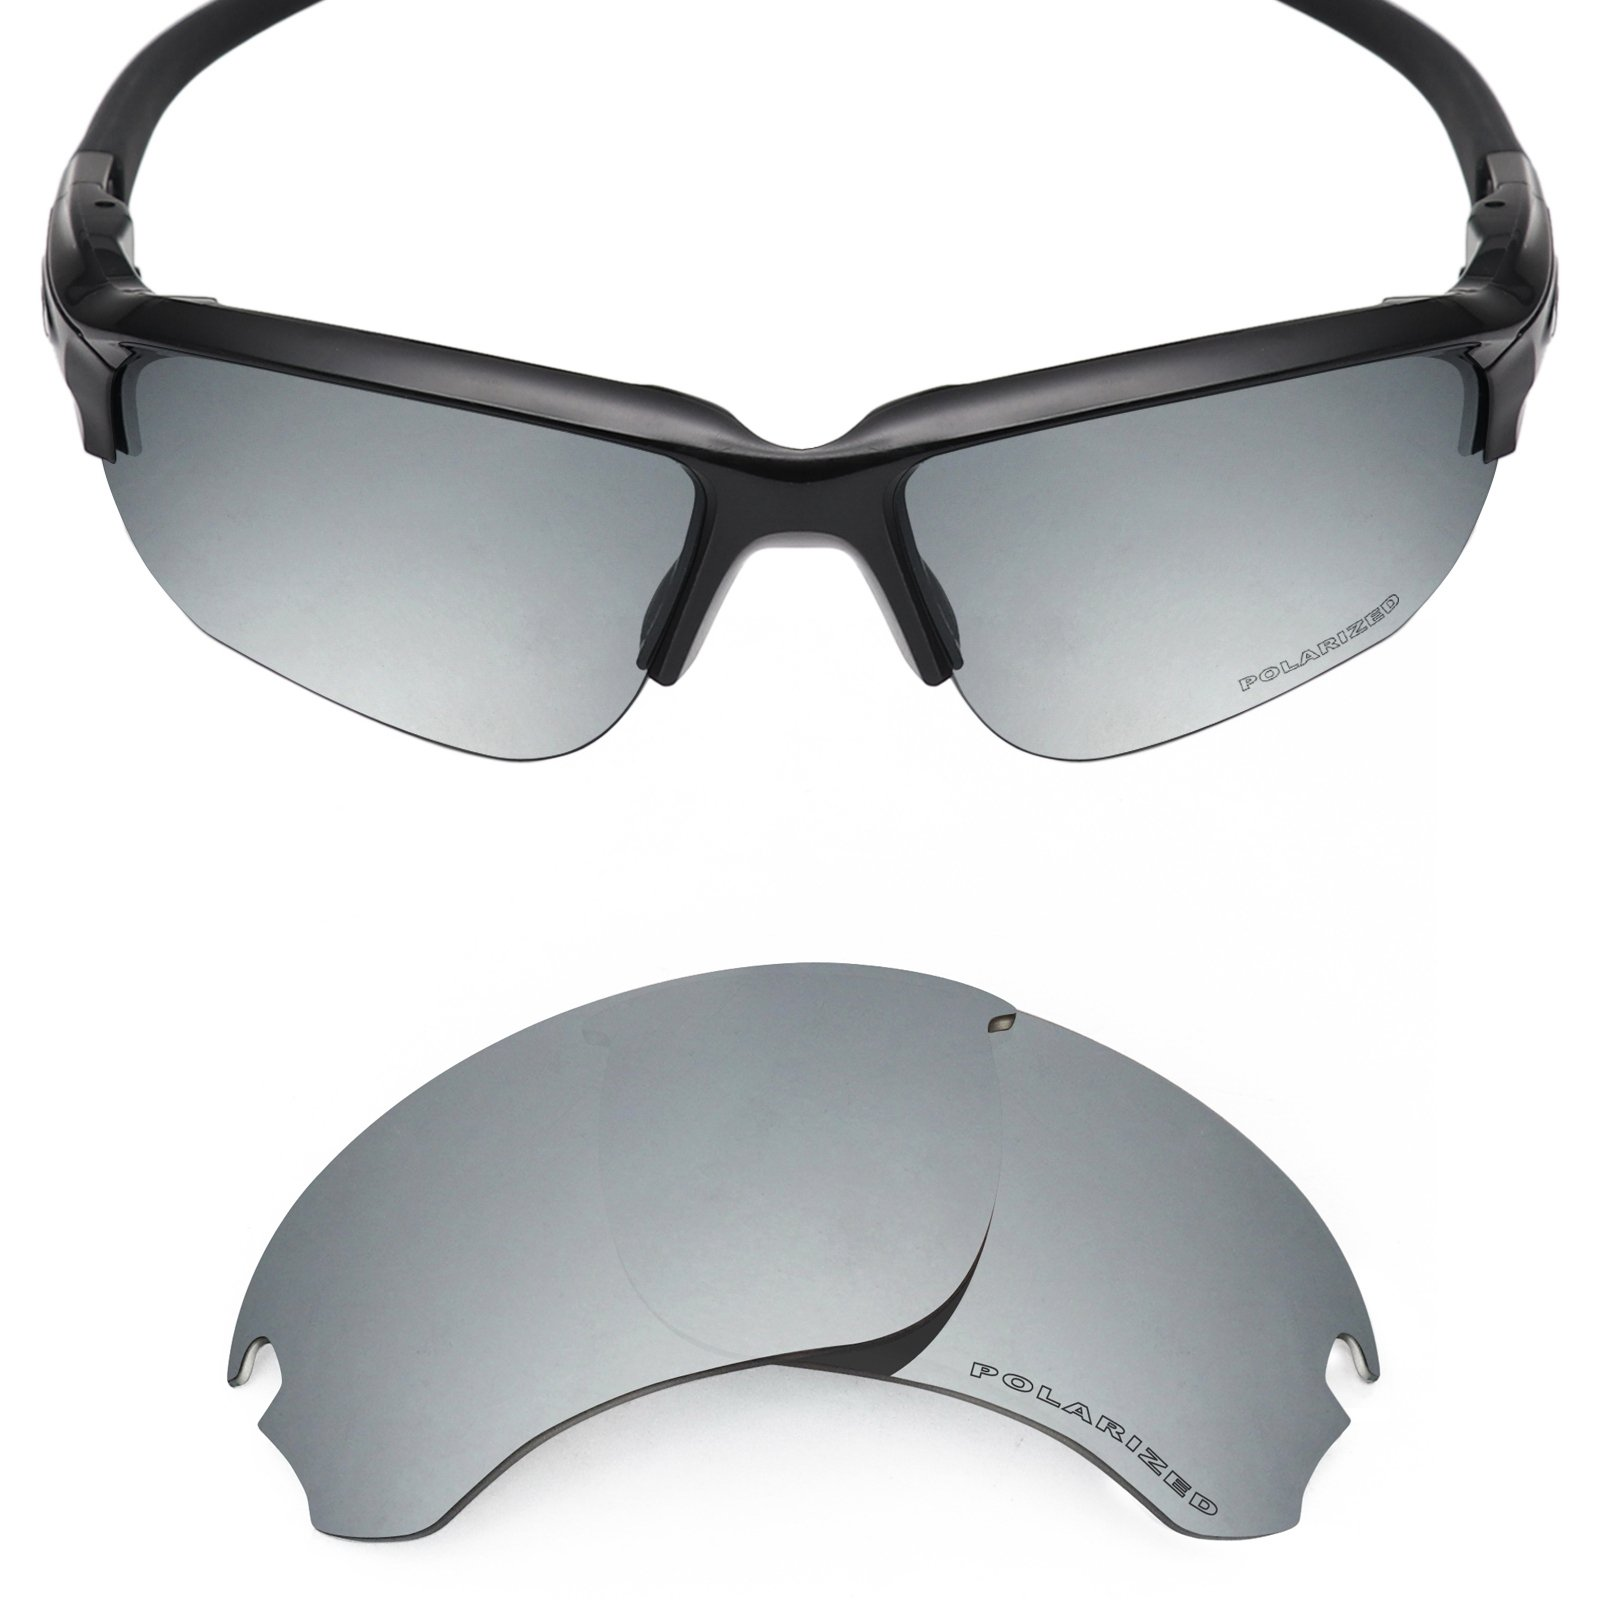 Mryok+ Polarized Replacement Lenses for Oakley Si Speed Jacket - Silver Titanium by Mryok